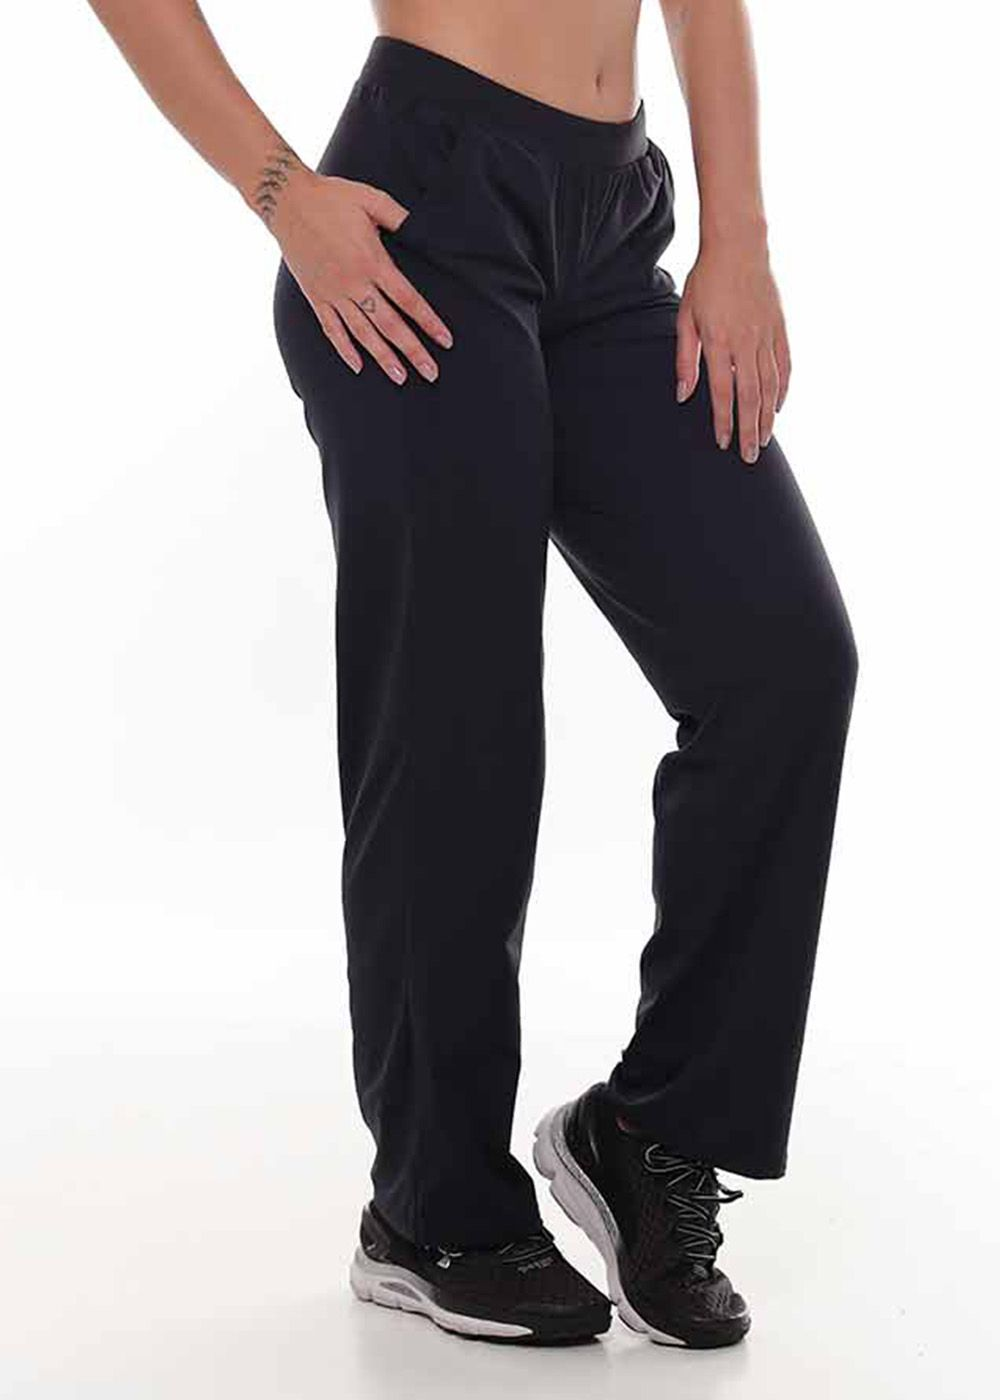 CALÇA PANTALONA VIVA LIGHT JUST FIT - PRETO